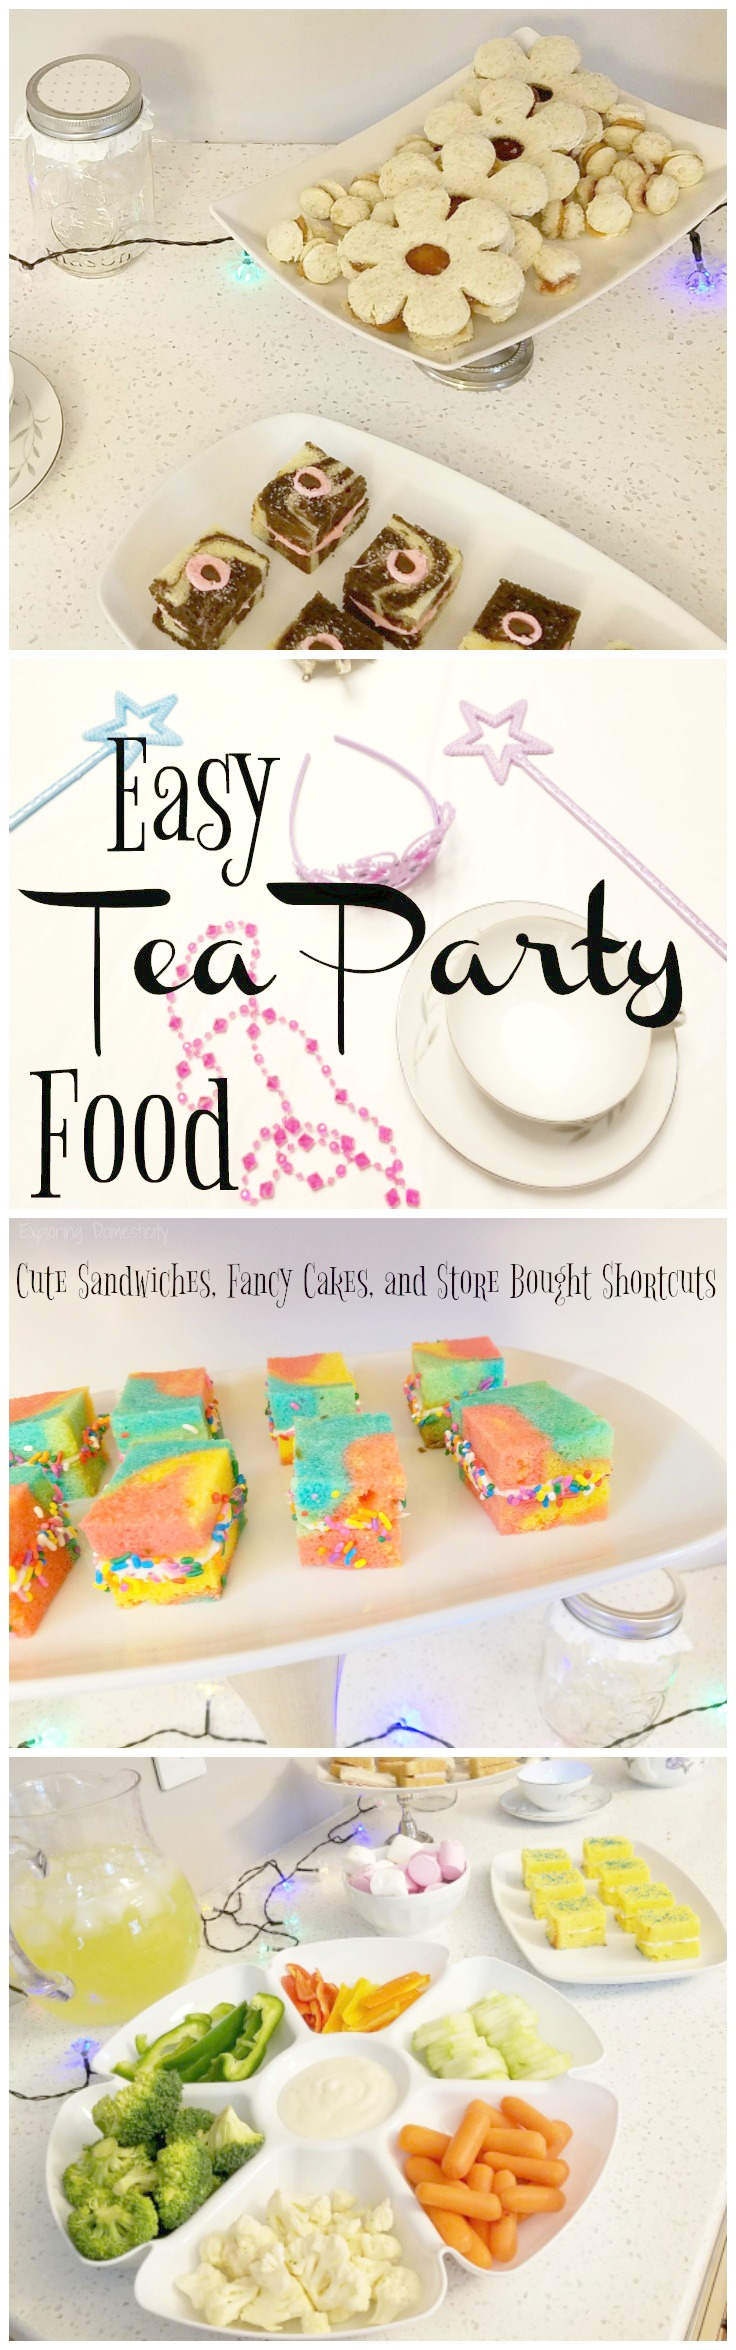 Easy Tea Party Food: Cute sandwiches, fancy cakes, and store bought ...